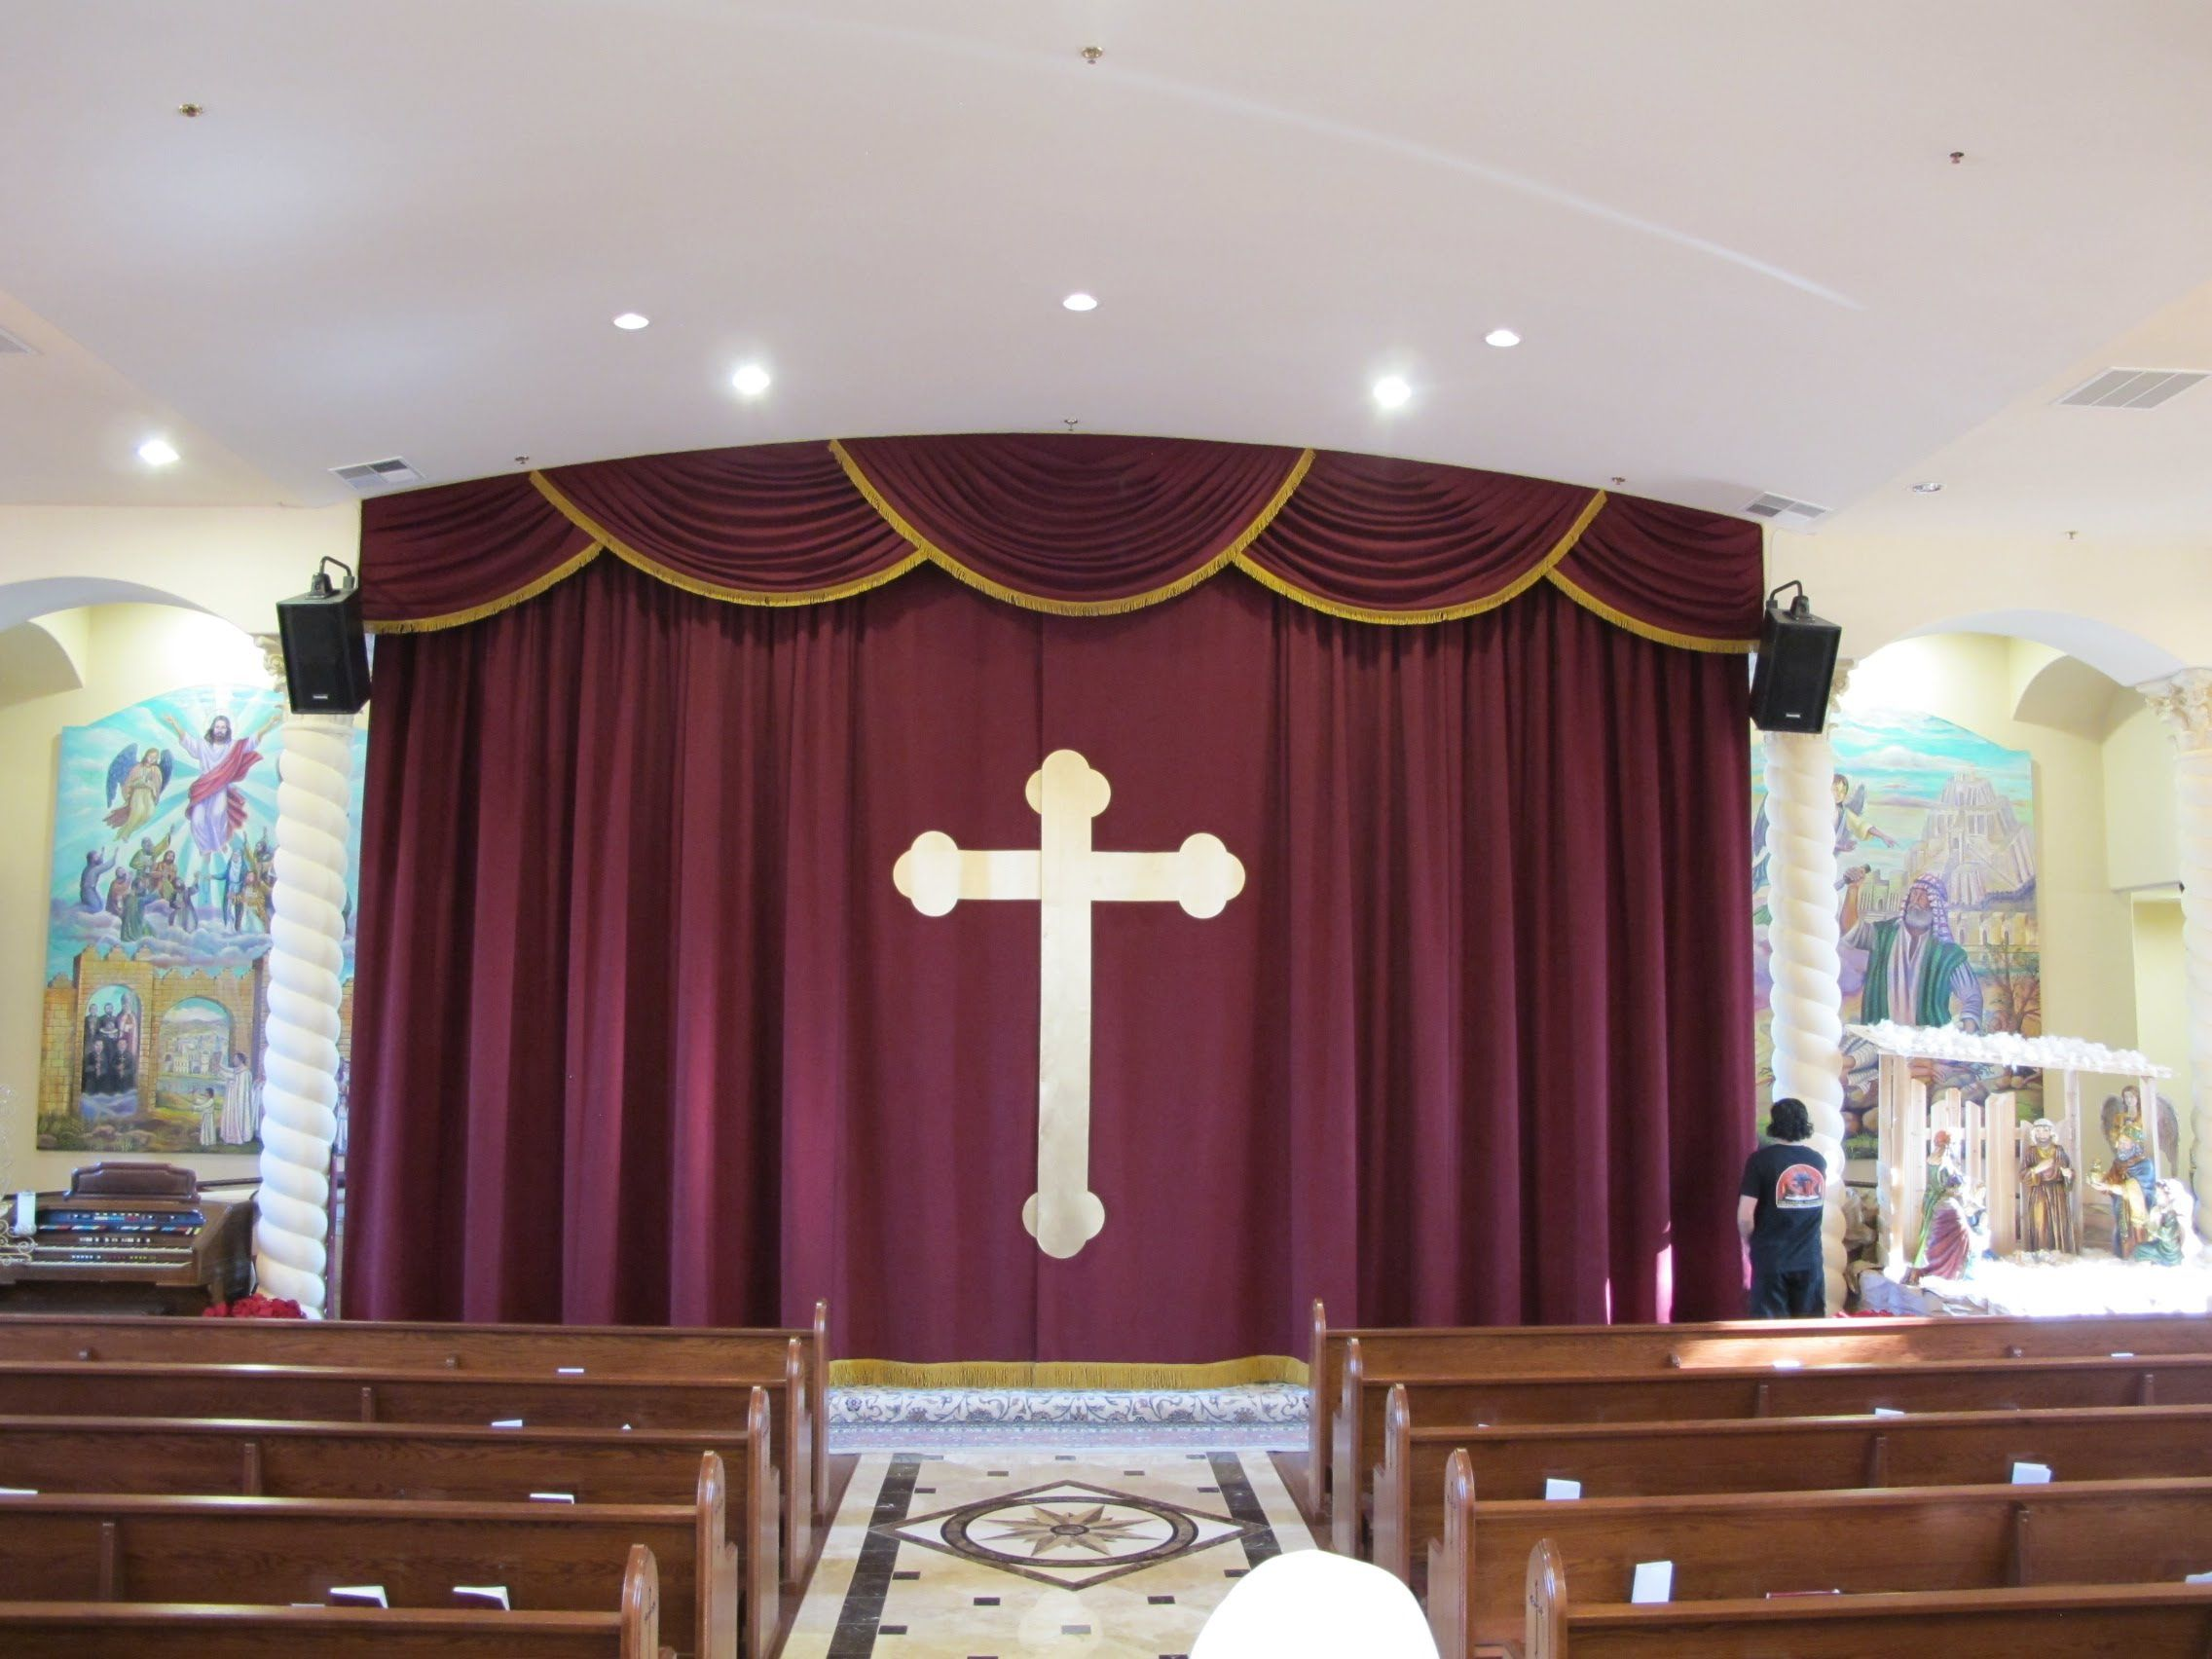 Church Altar Curtains With Cross Applique Church Stage Curtains And Swag Valance Stage Curtains Curtain Decor Curtains